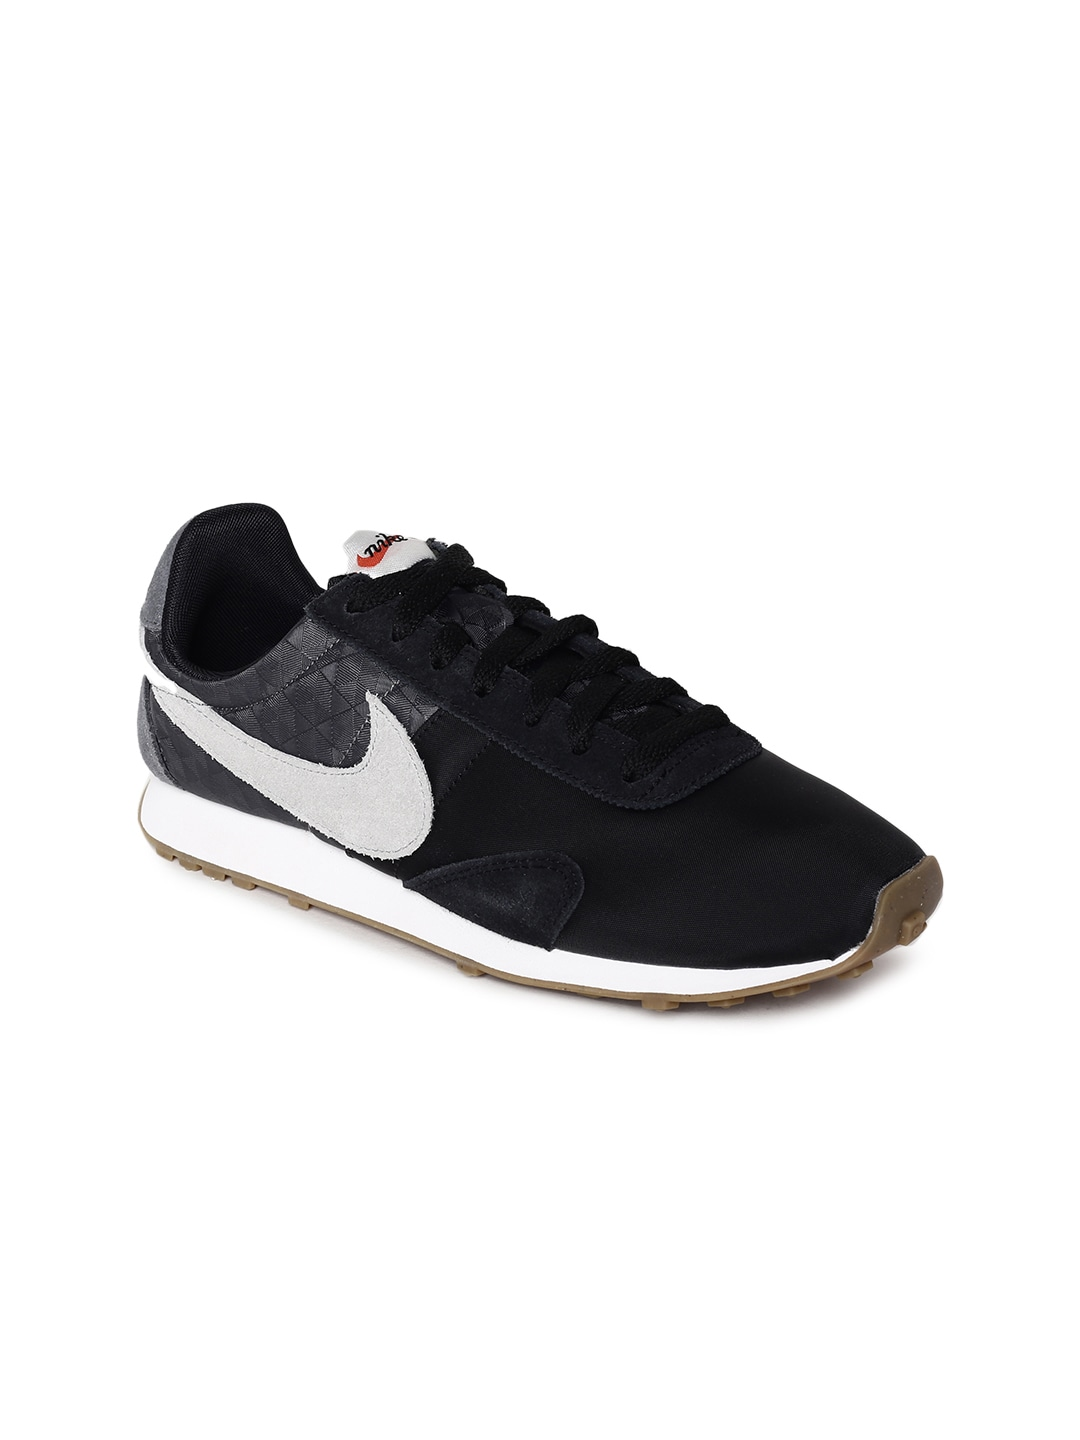 Nike Shoes - Buy Nike Shoes for Men   Women Online  6d08ea2db